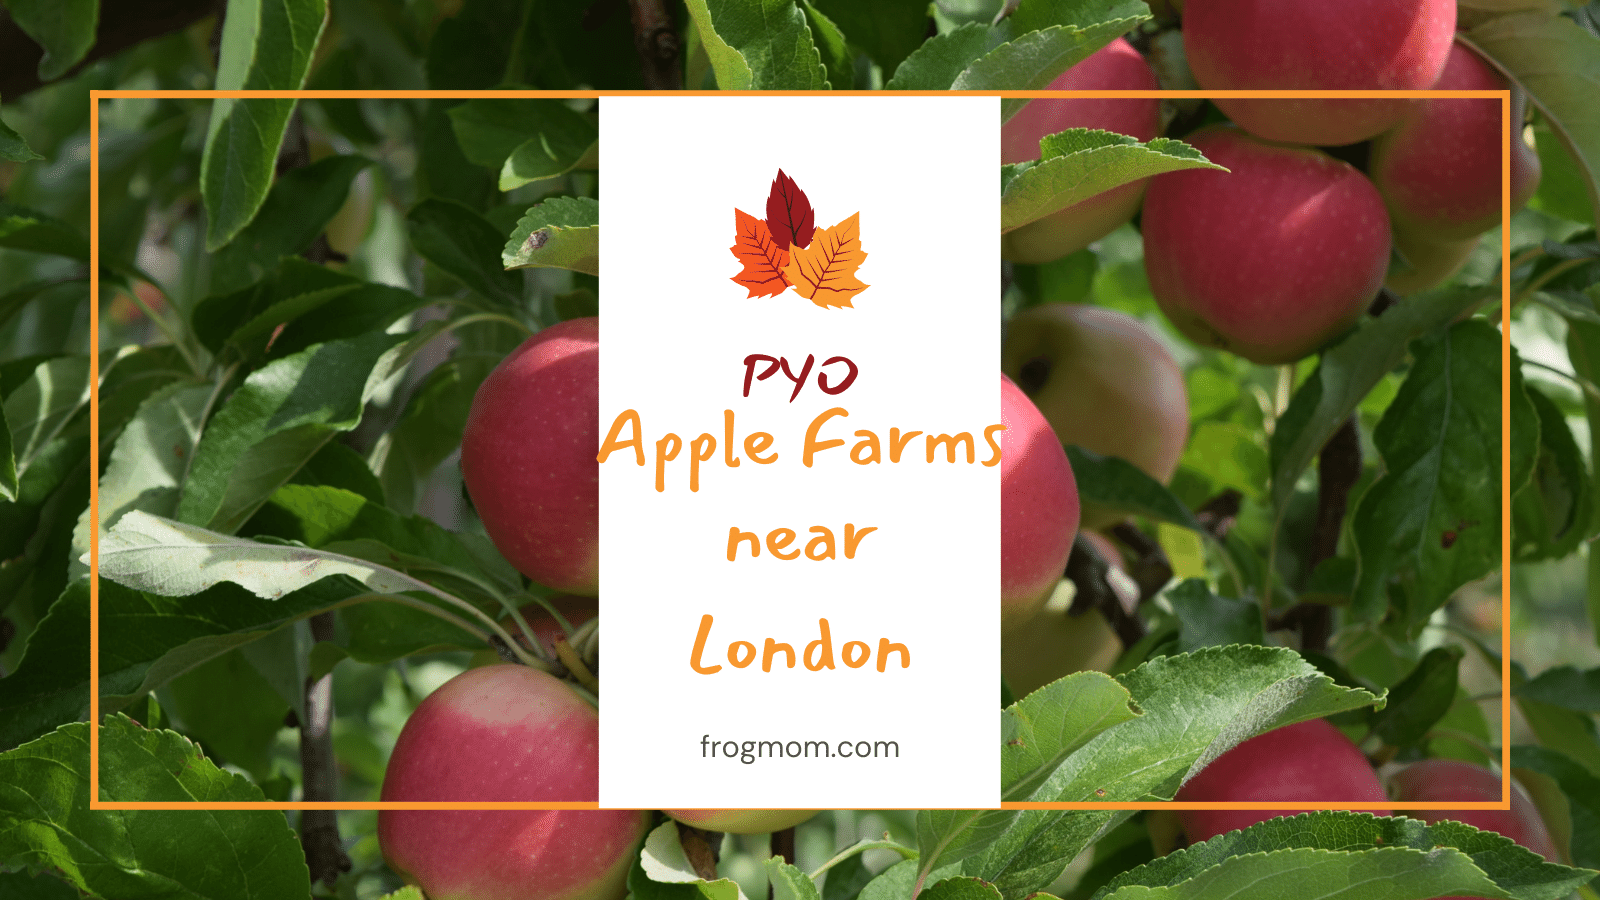 Pick Your Own Apple Farms near London - Feature image with apples on an apple tree